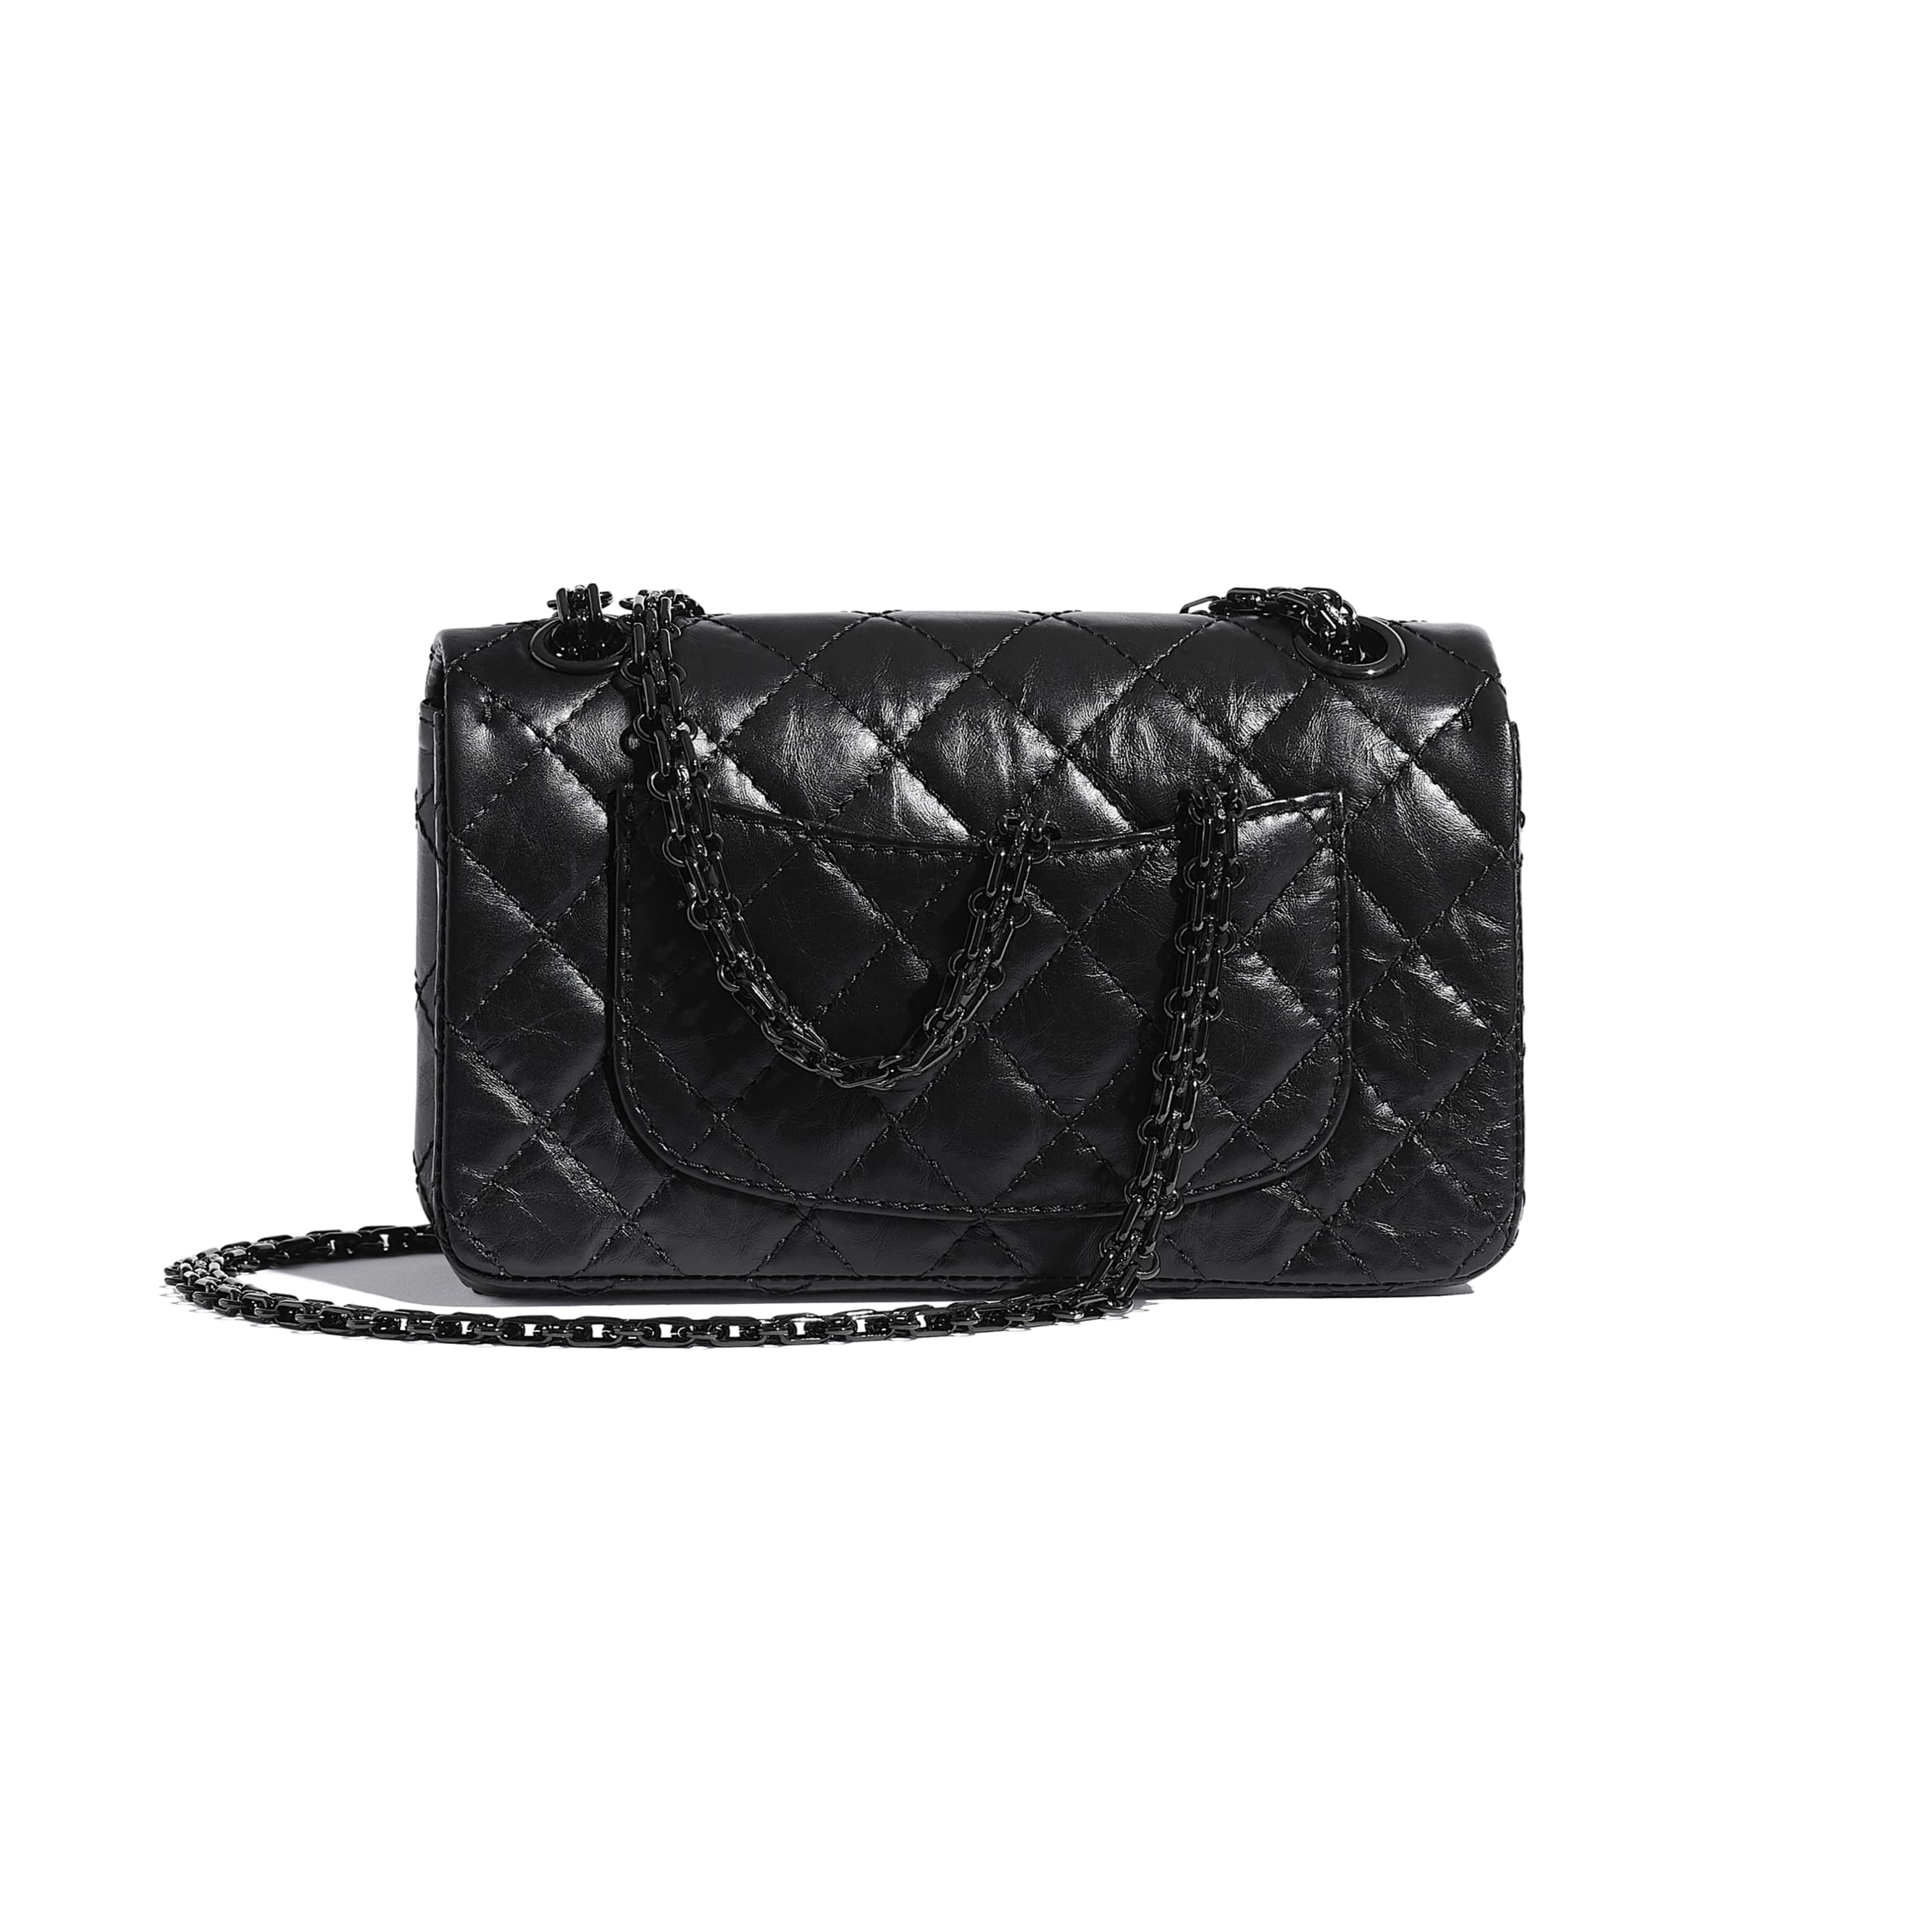 Small 2.55 Handbag - Black - Aged Calfskin & Black Metal - CHANEL - Alternative view - see standard sized version